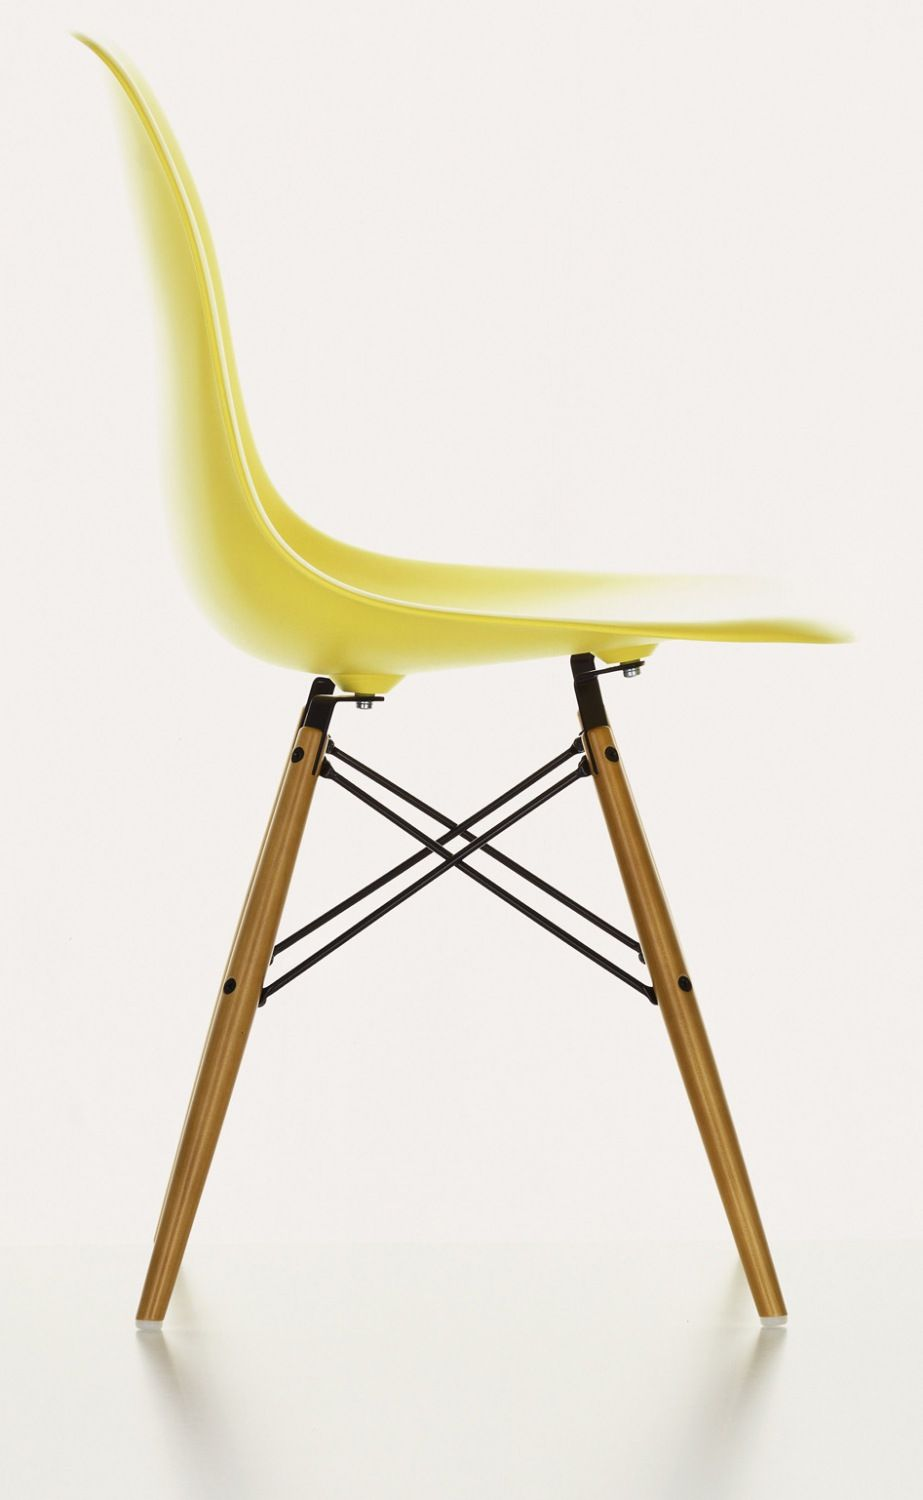 vitra eames side chair in yellow